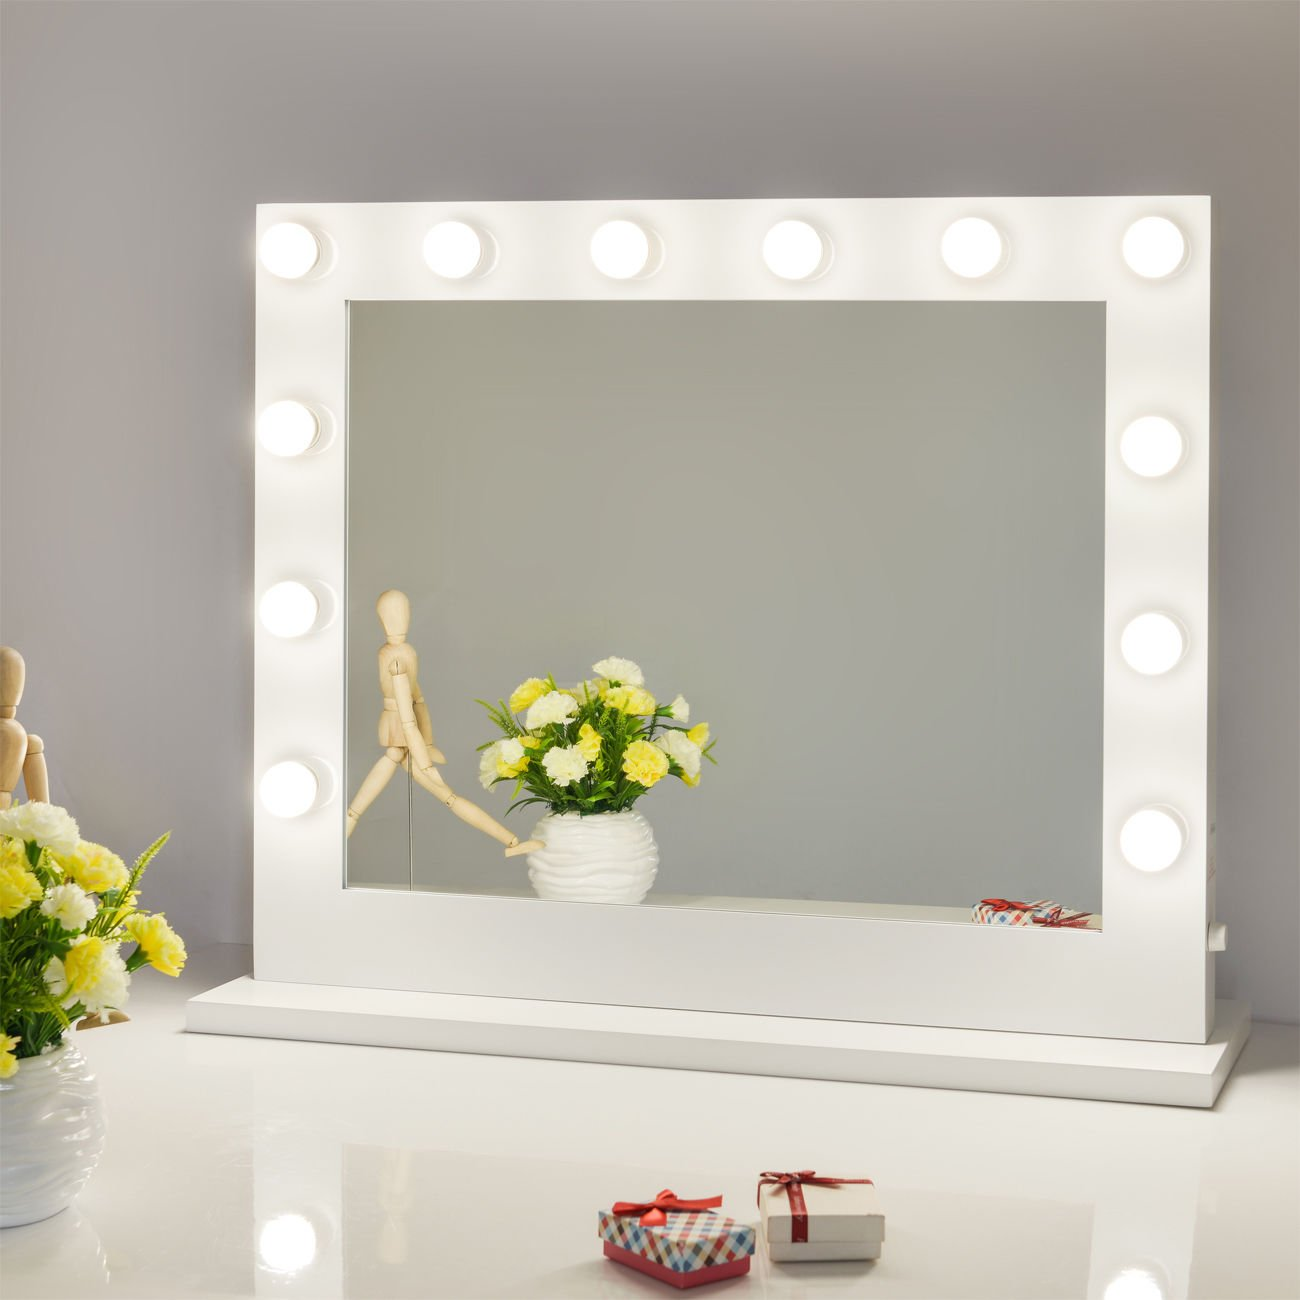 Amazon.com: Chende White Hollywood Lighted Makeup Vanity Mirror Light,  Makeup Dressing Table Vanity Set Mirrors With Dimmer, Tabletop Or Wall  Mounted Vanity ...